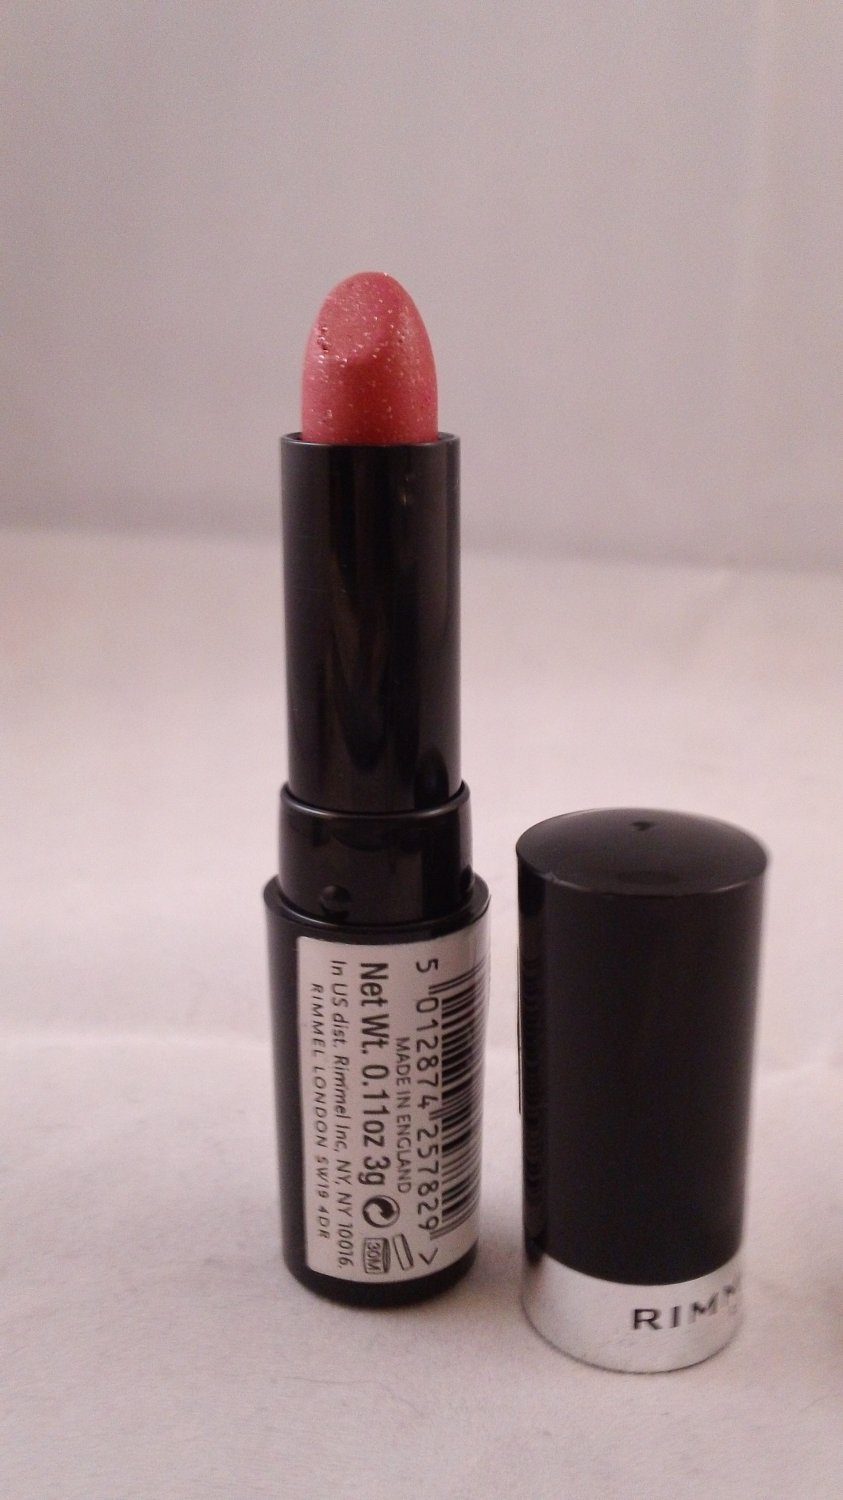 Rimmel London Cool Shine Lipstick #022 Fresh